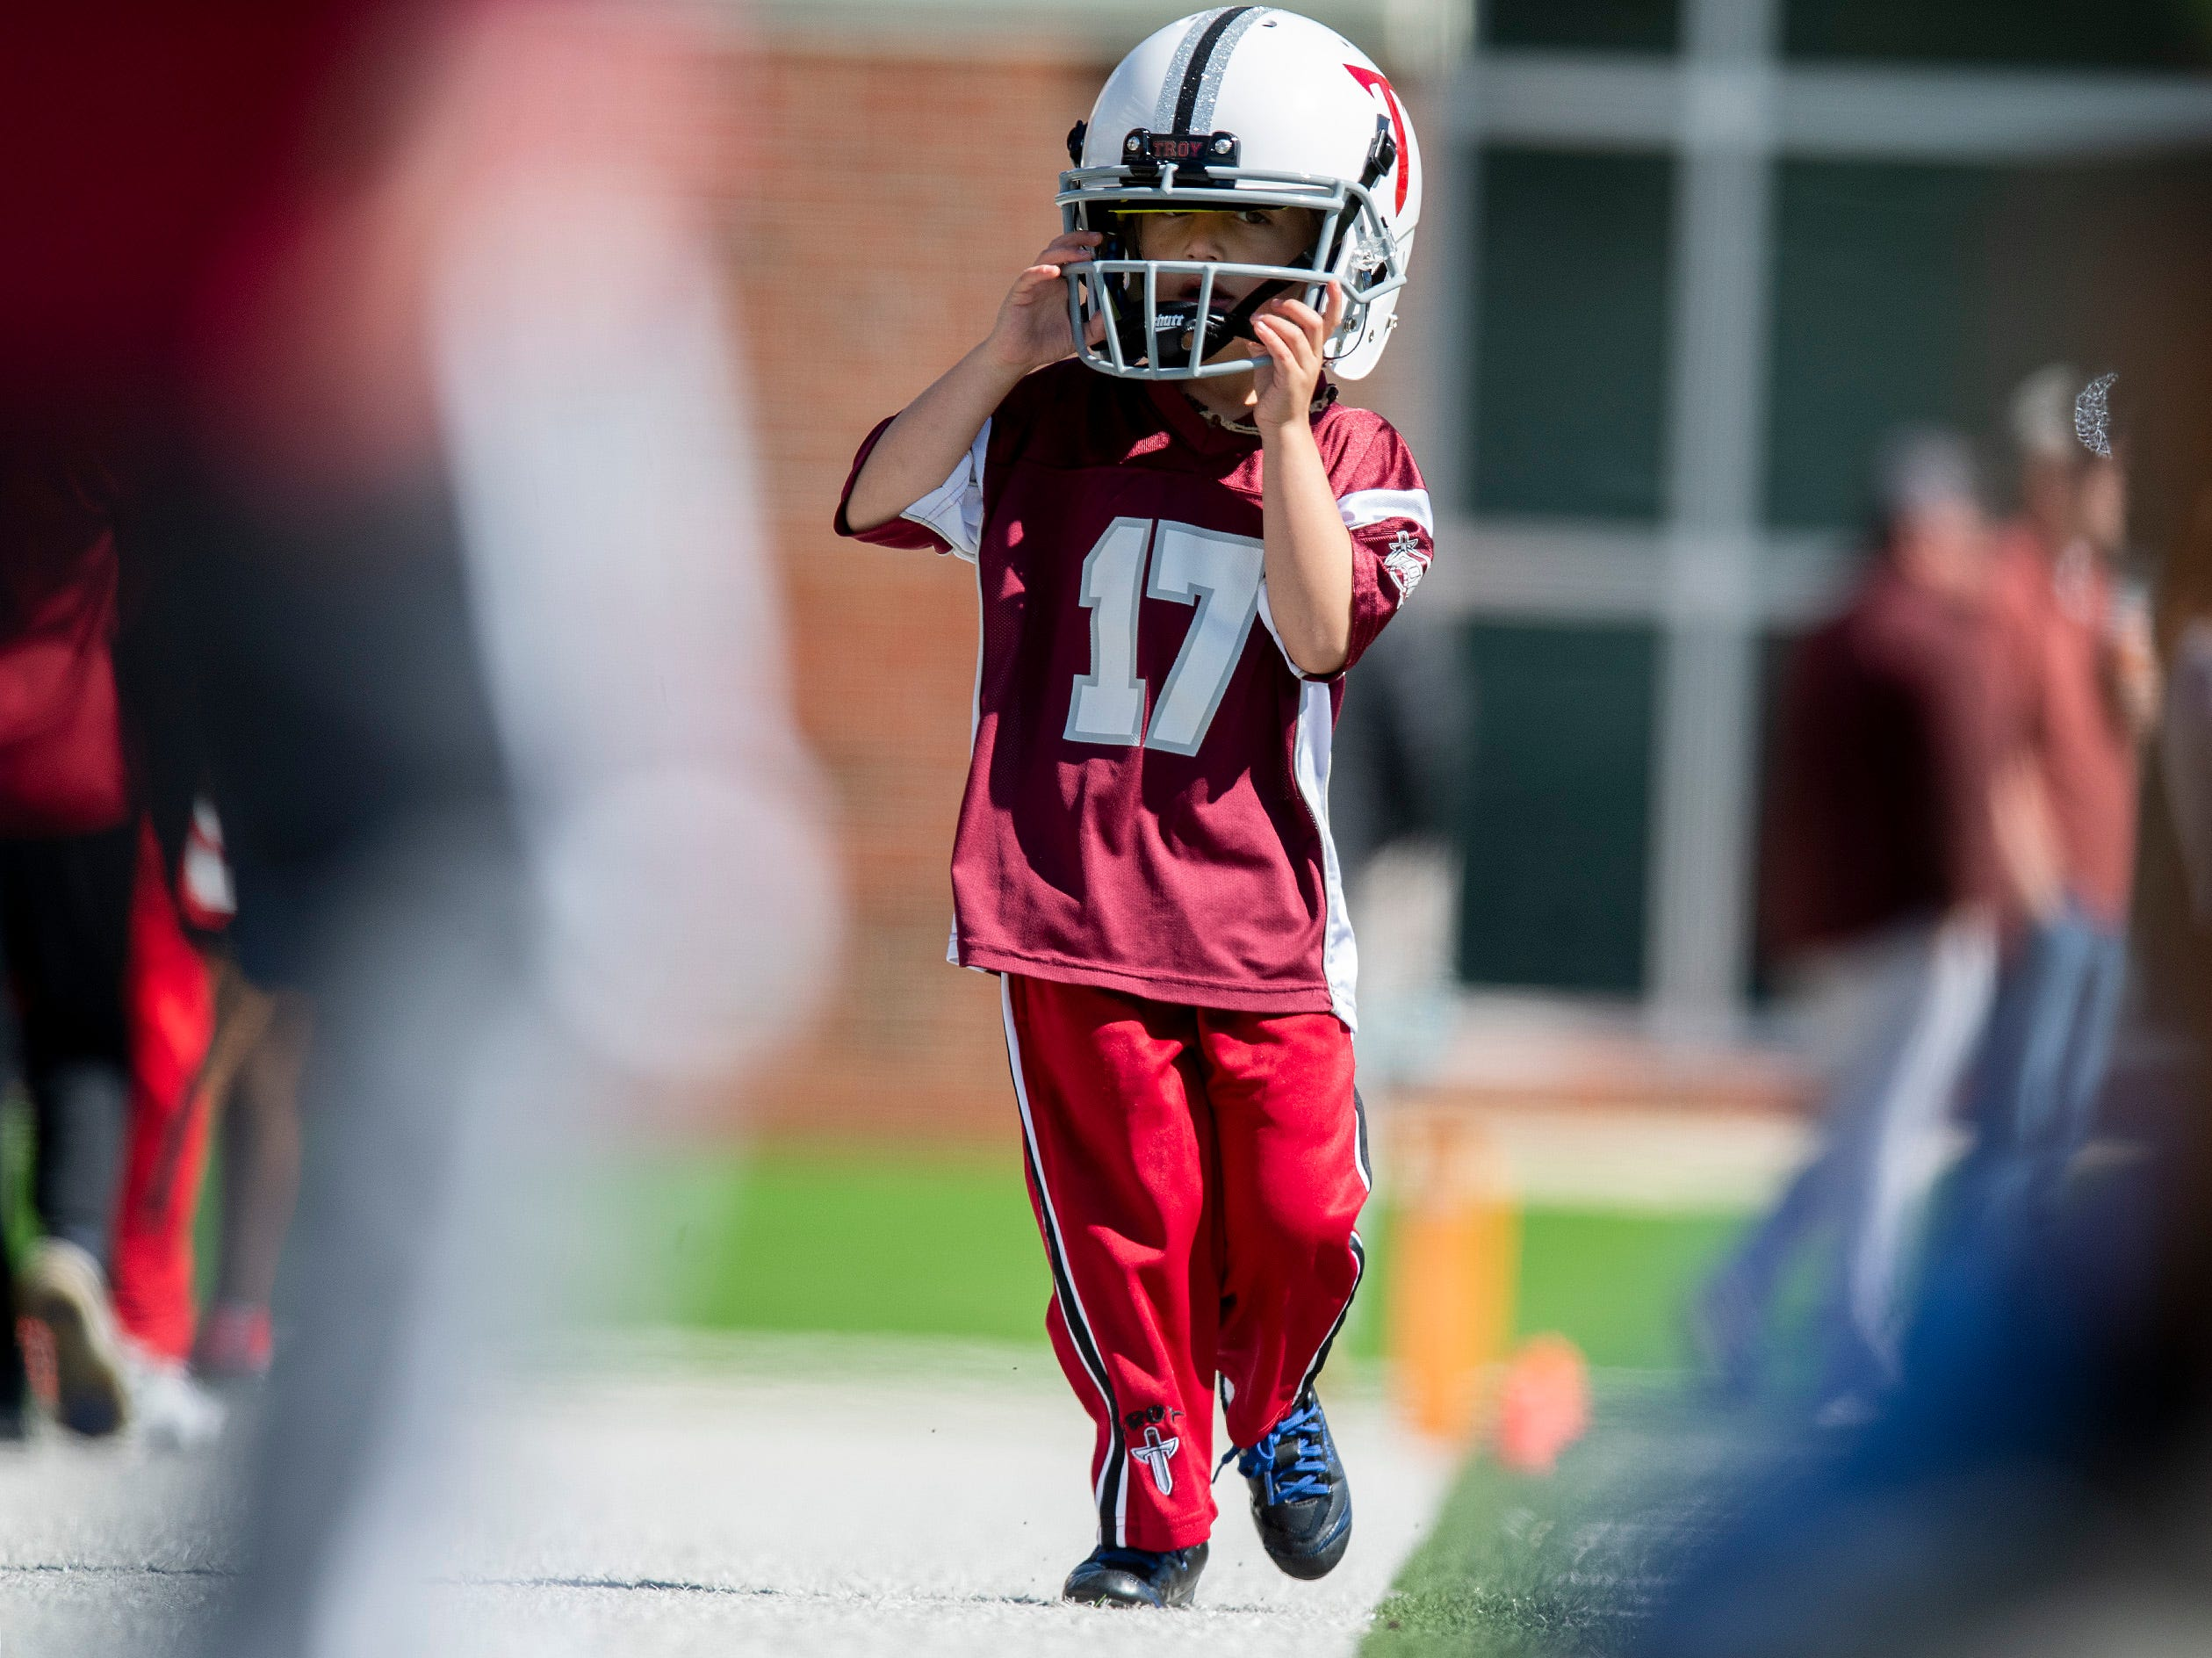 Children take part in a football clinic before the Troy University T-Day spring scrimmage game in Troy, Ala., on Saturday April 20, 2019.